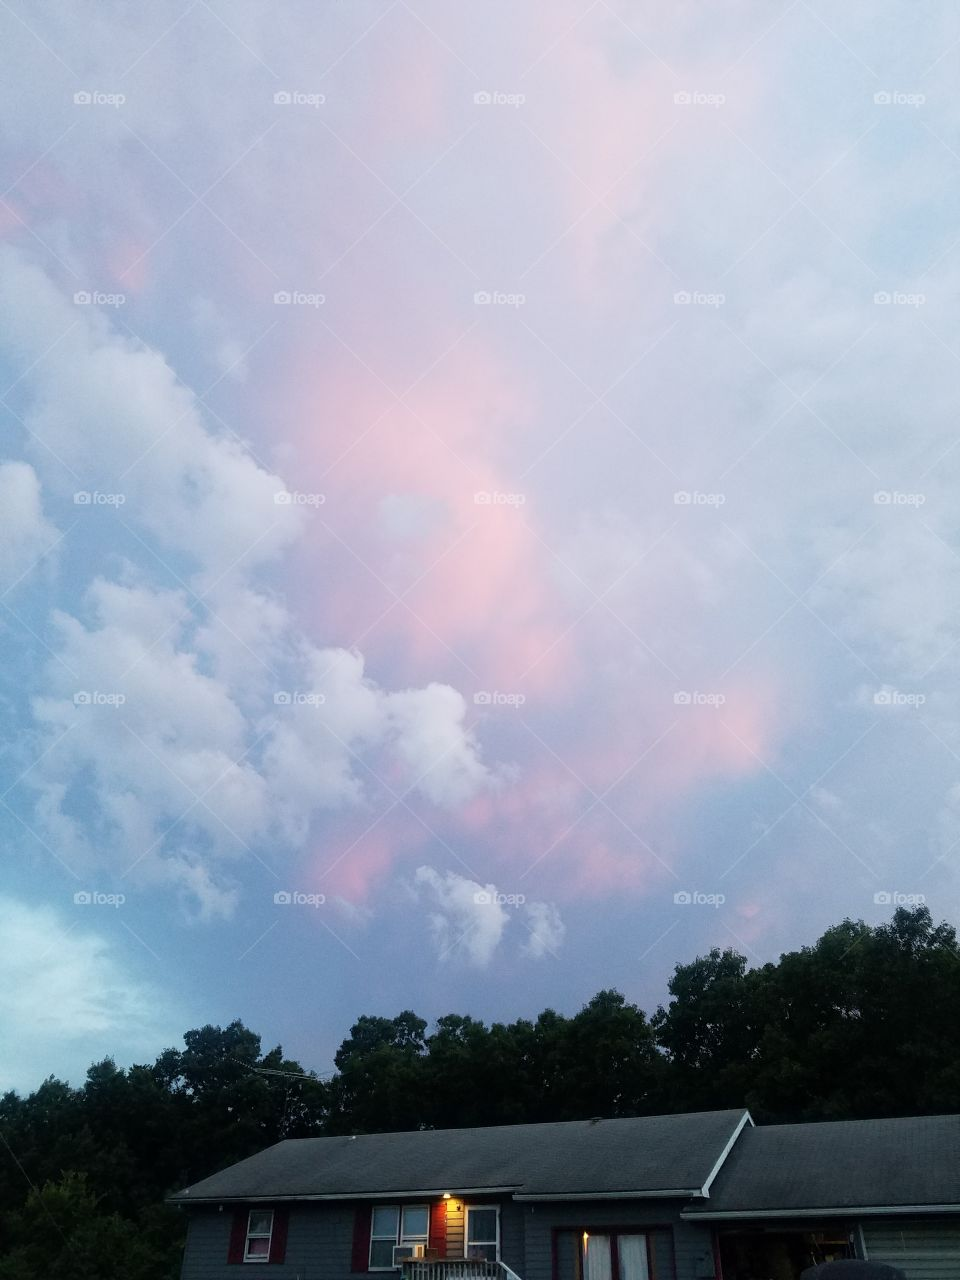 beautiful colors in the clouds.